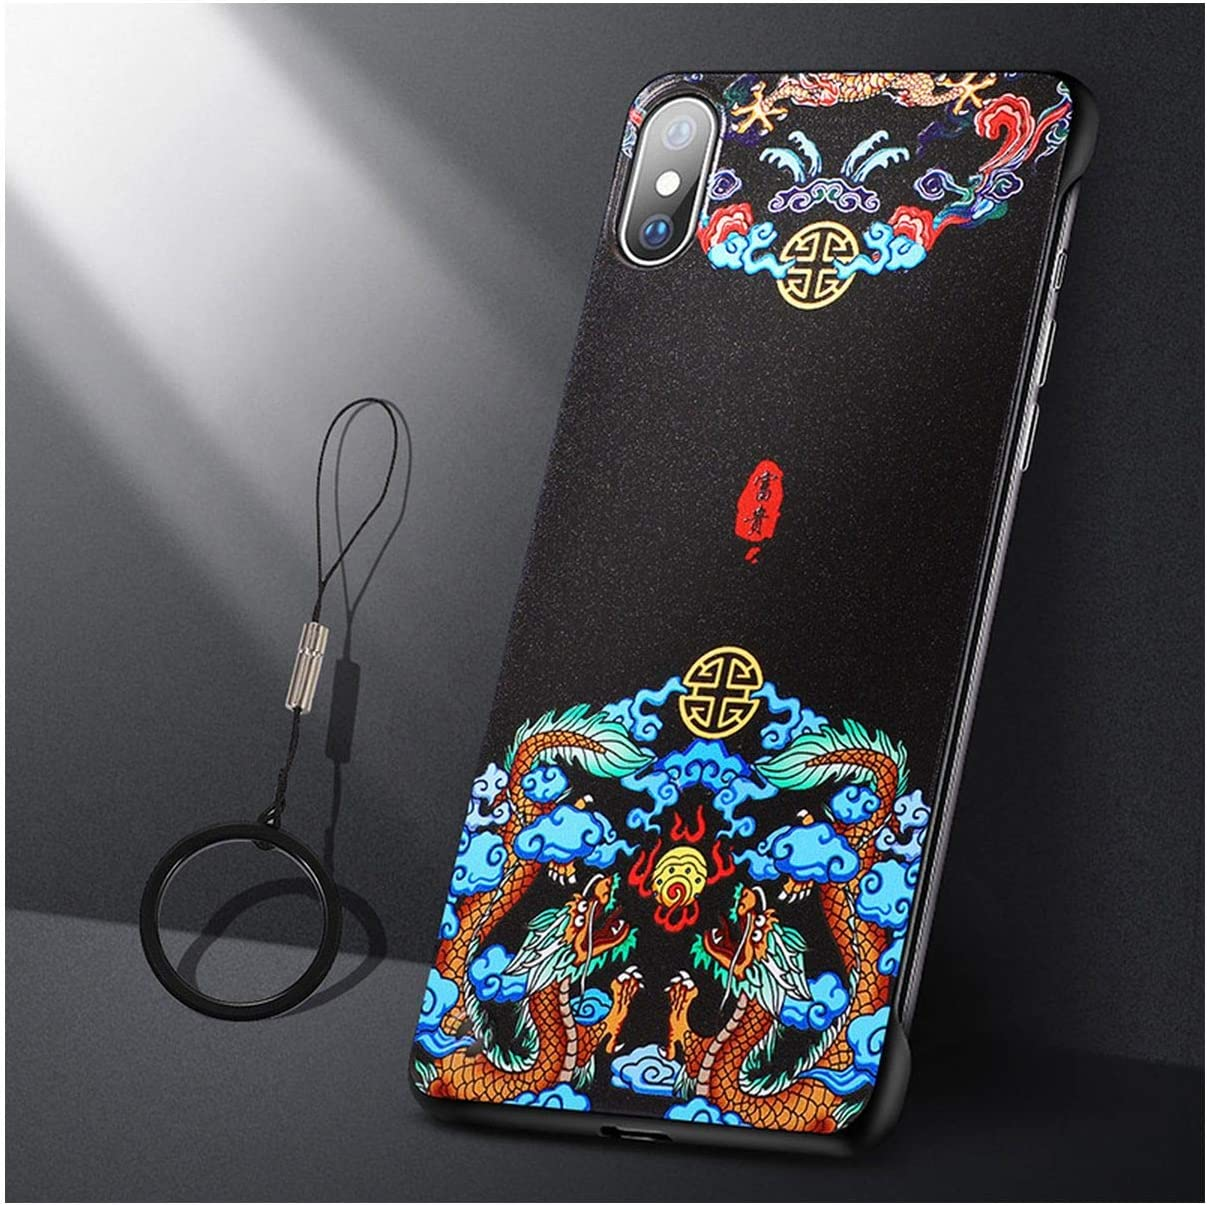 for iPhone 11 Pro Max Case Thin Frameless Ring Vintage Chinese Style for iPhone 11 Pro X Xs Max Xr 11 7 8 Plus Back Case,for iPhone 11pro Max,Red